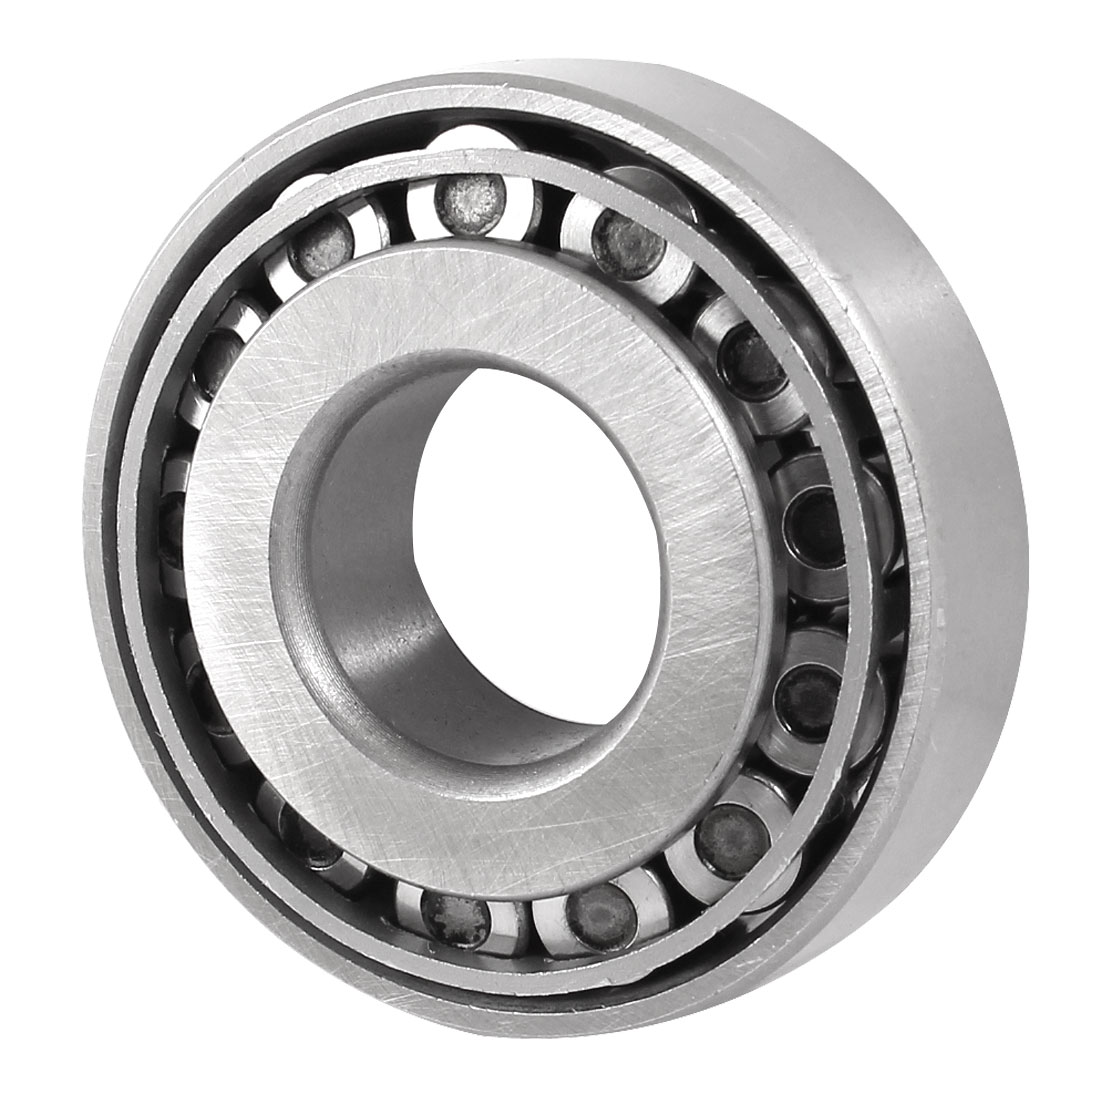 30305 Steering Head Set Tapered Roller Bearings 25mm x 62mm x 17mm